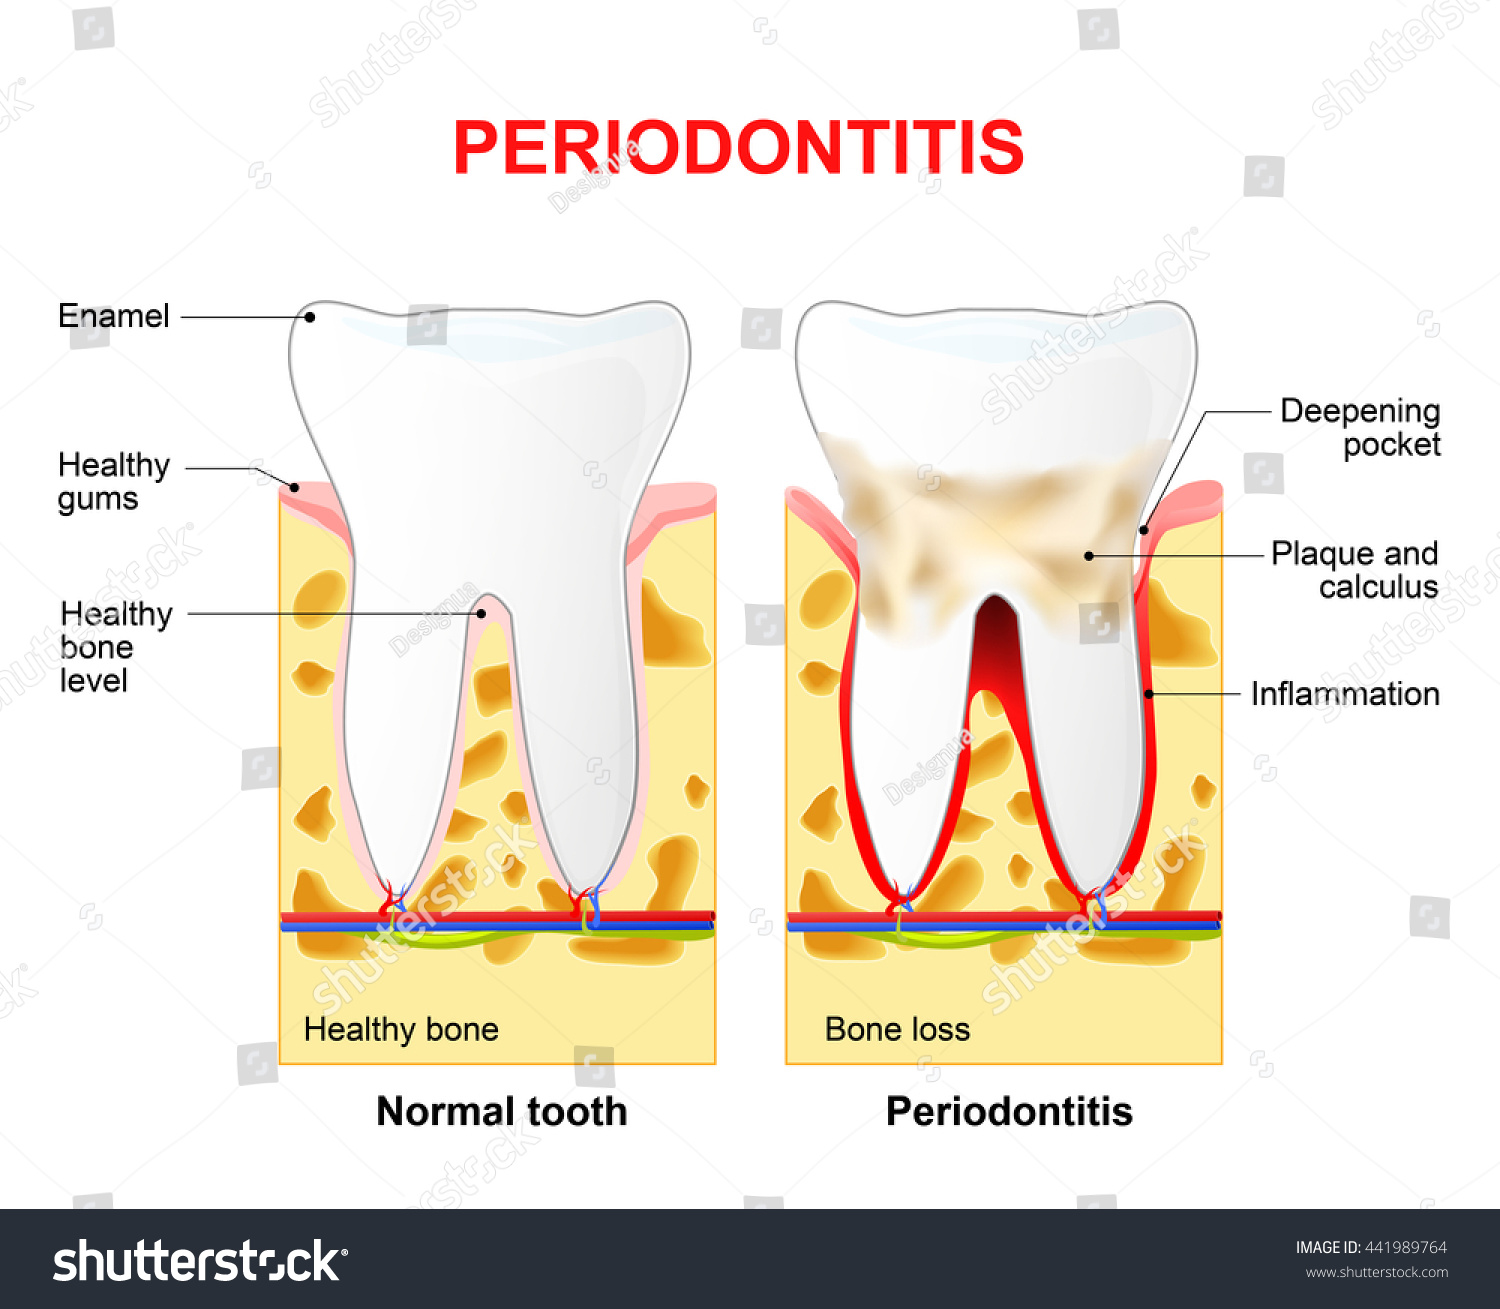 Periodontitis Is A Inflammatory Diseases Affecting The Periodontium